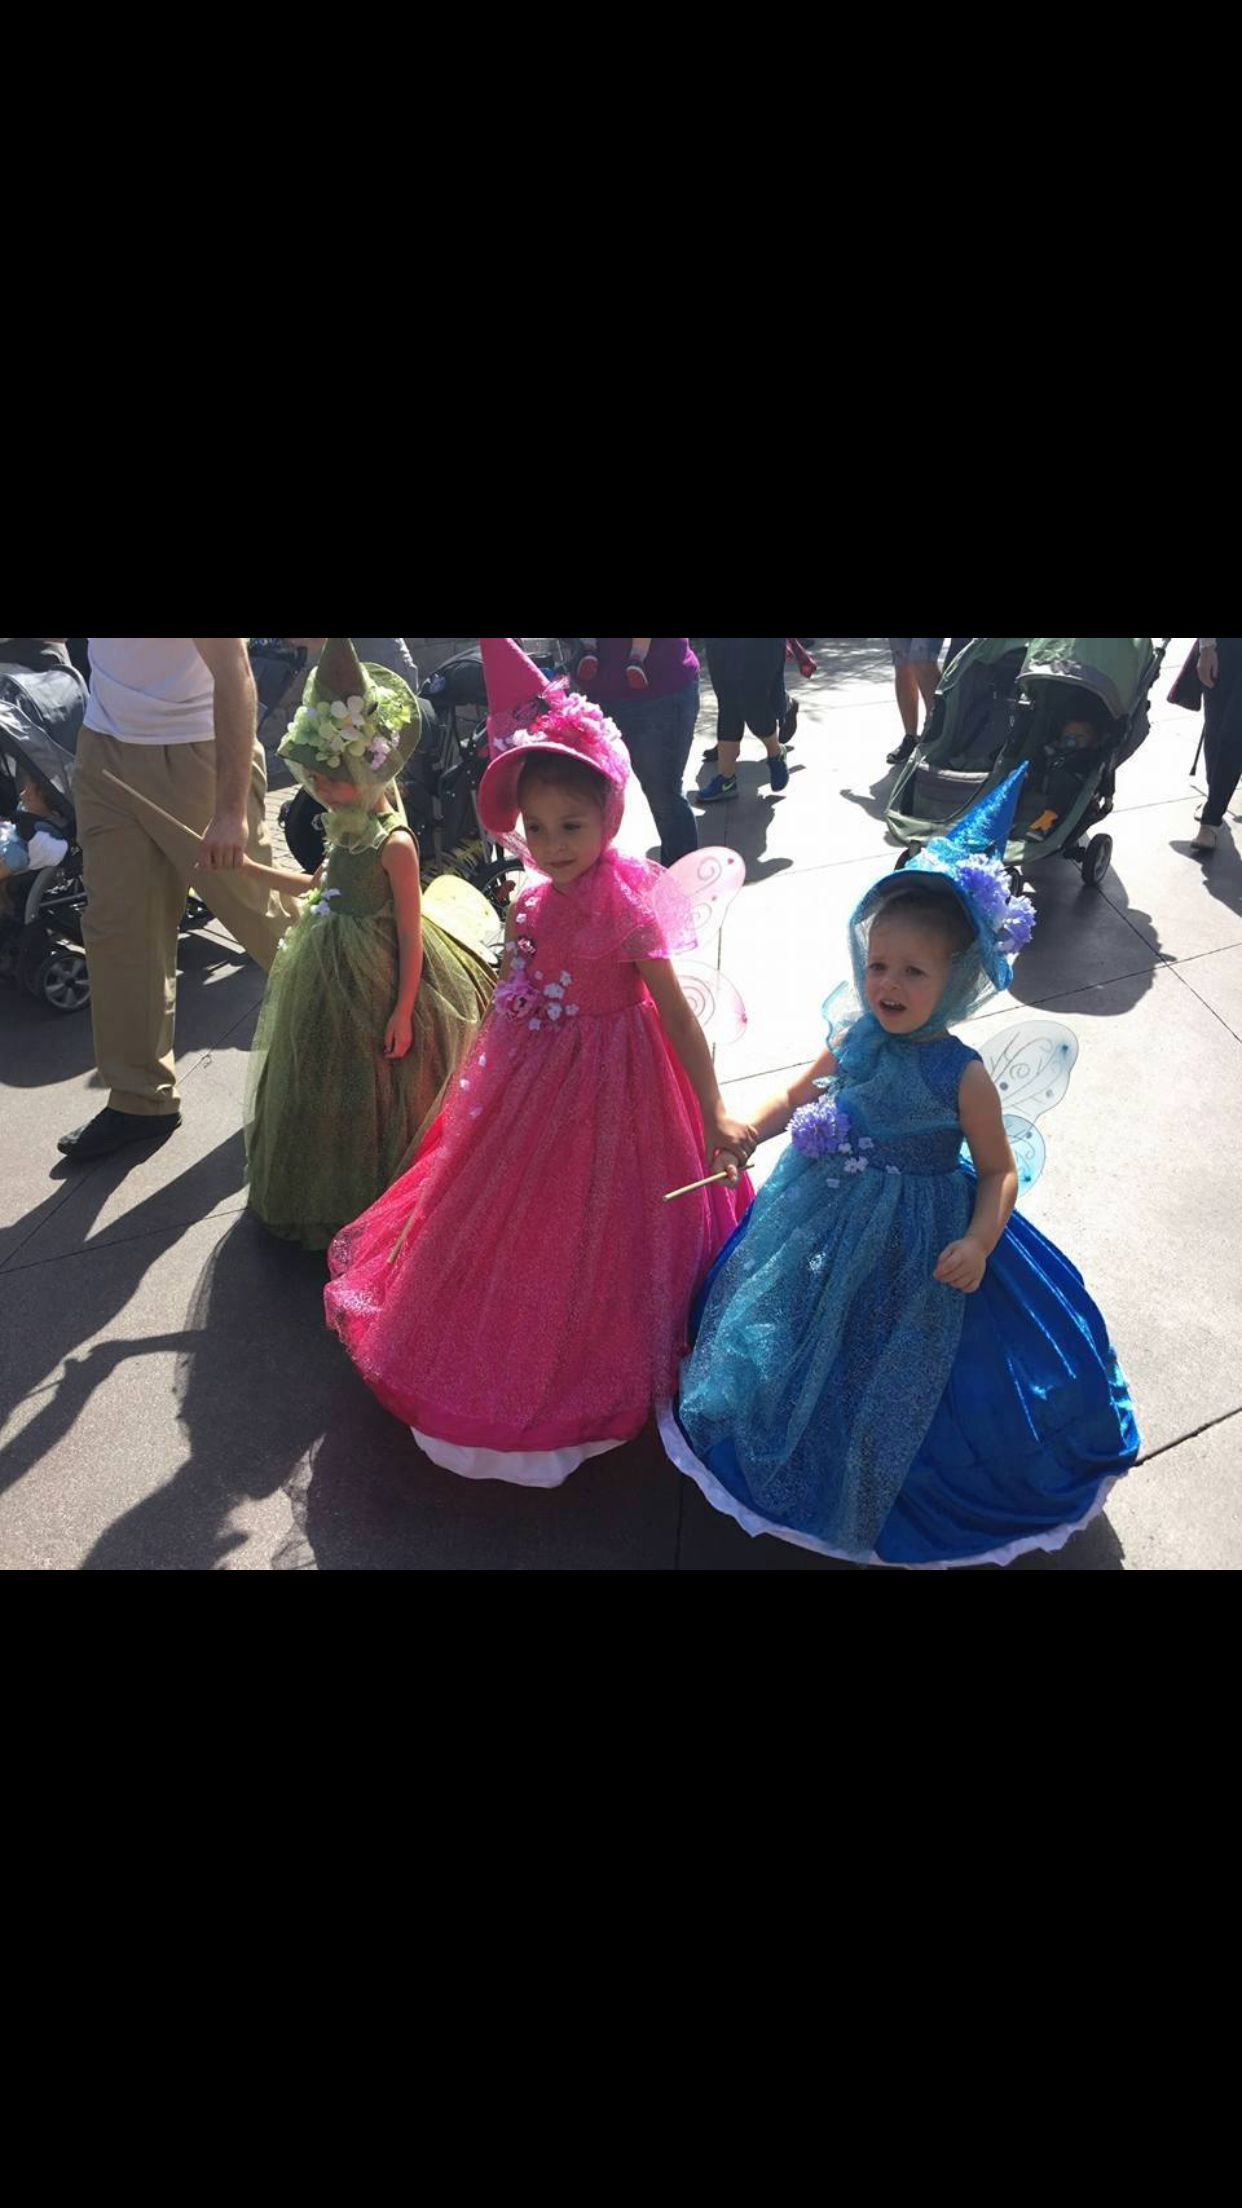 "Niece Halloween costume idea ""three fairies from sleeping beauty"""